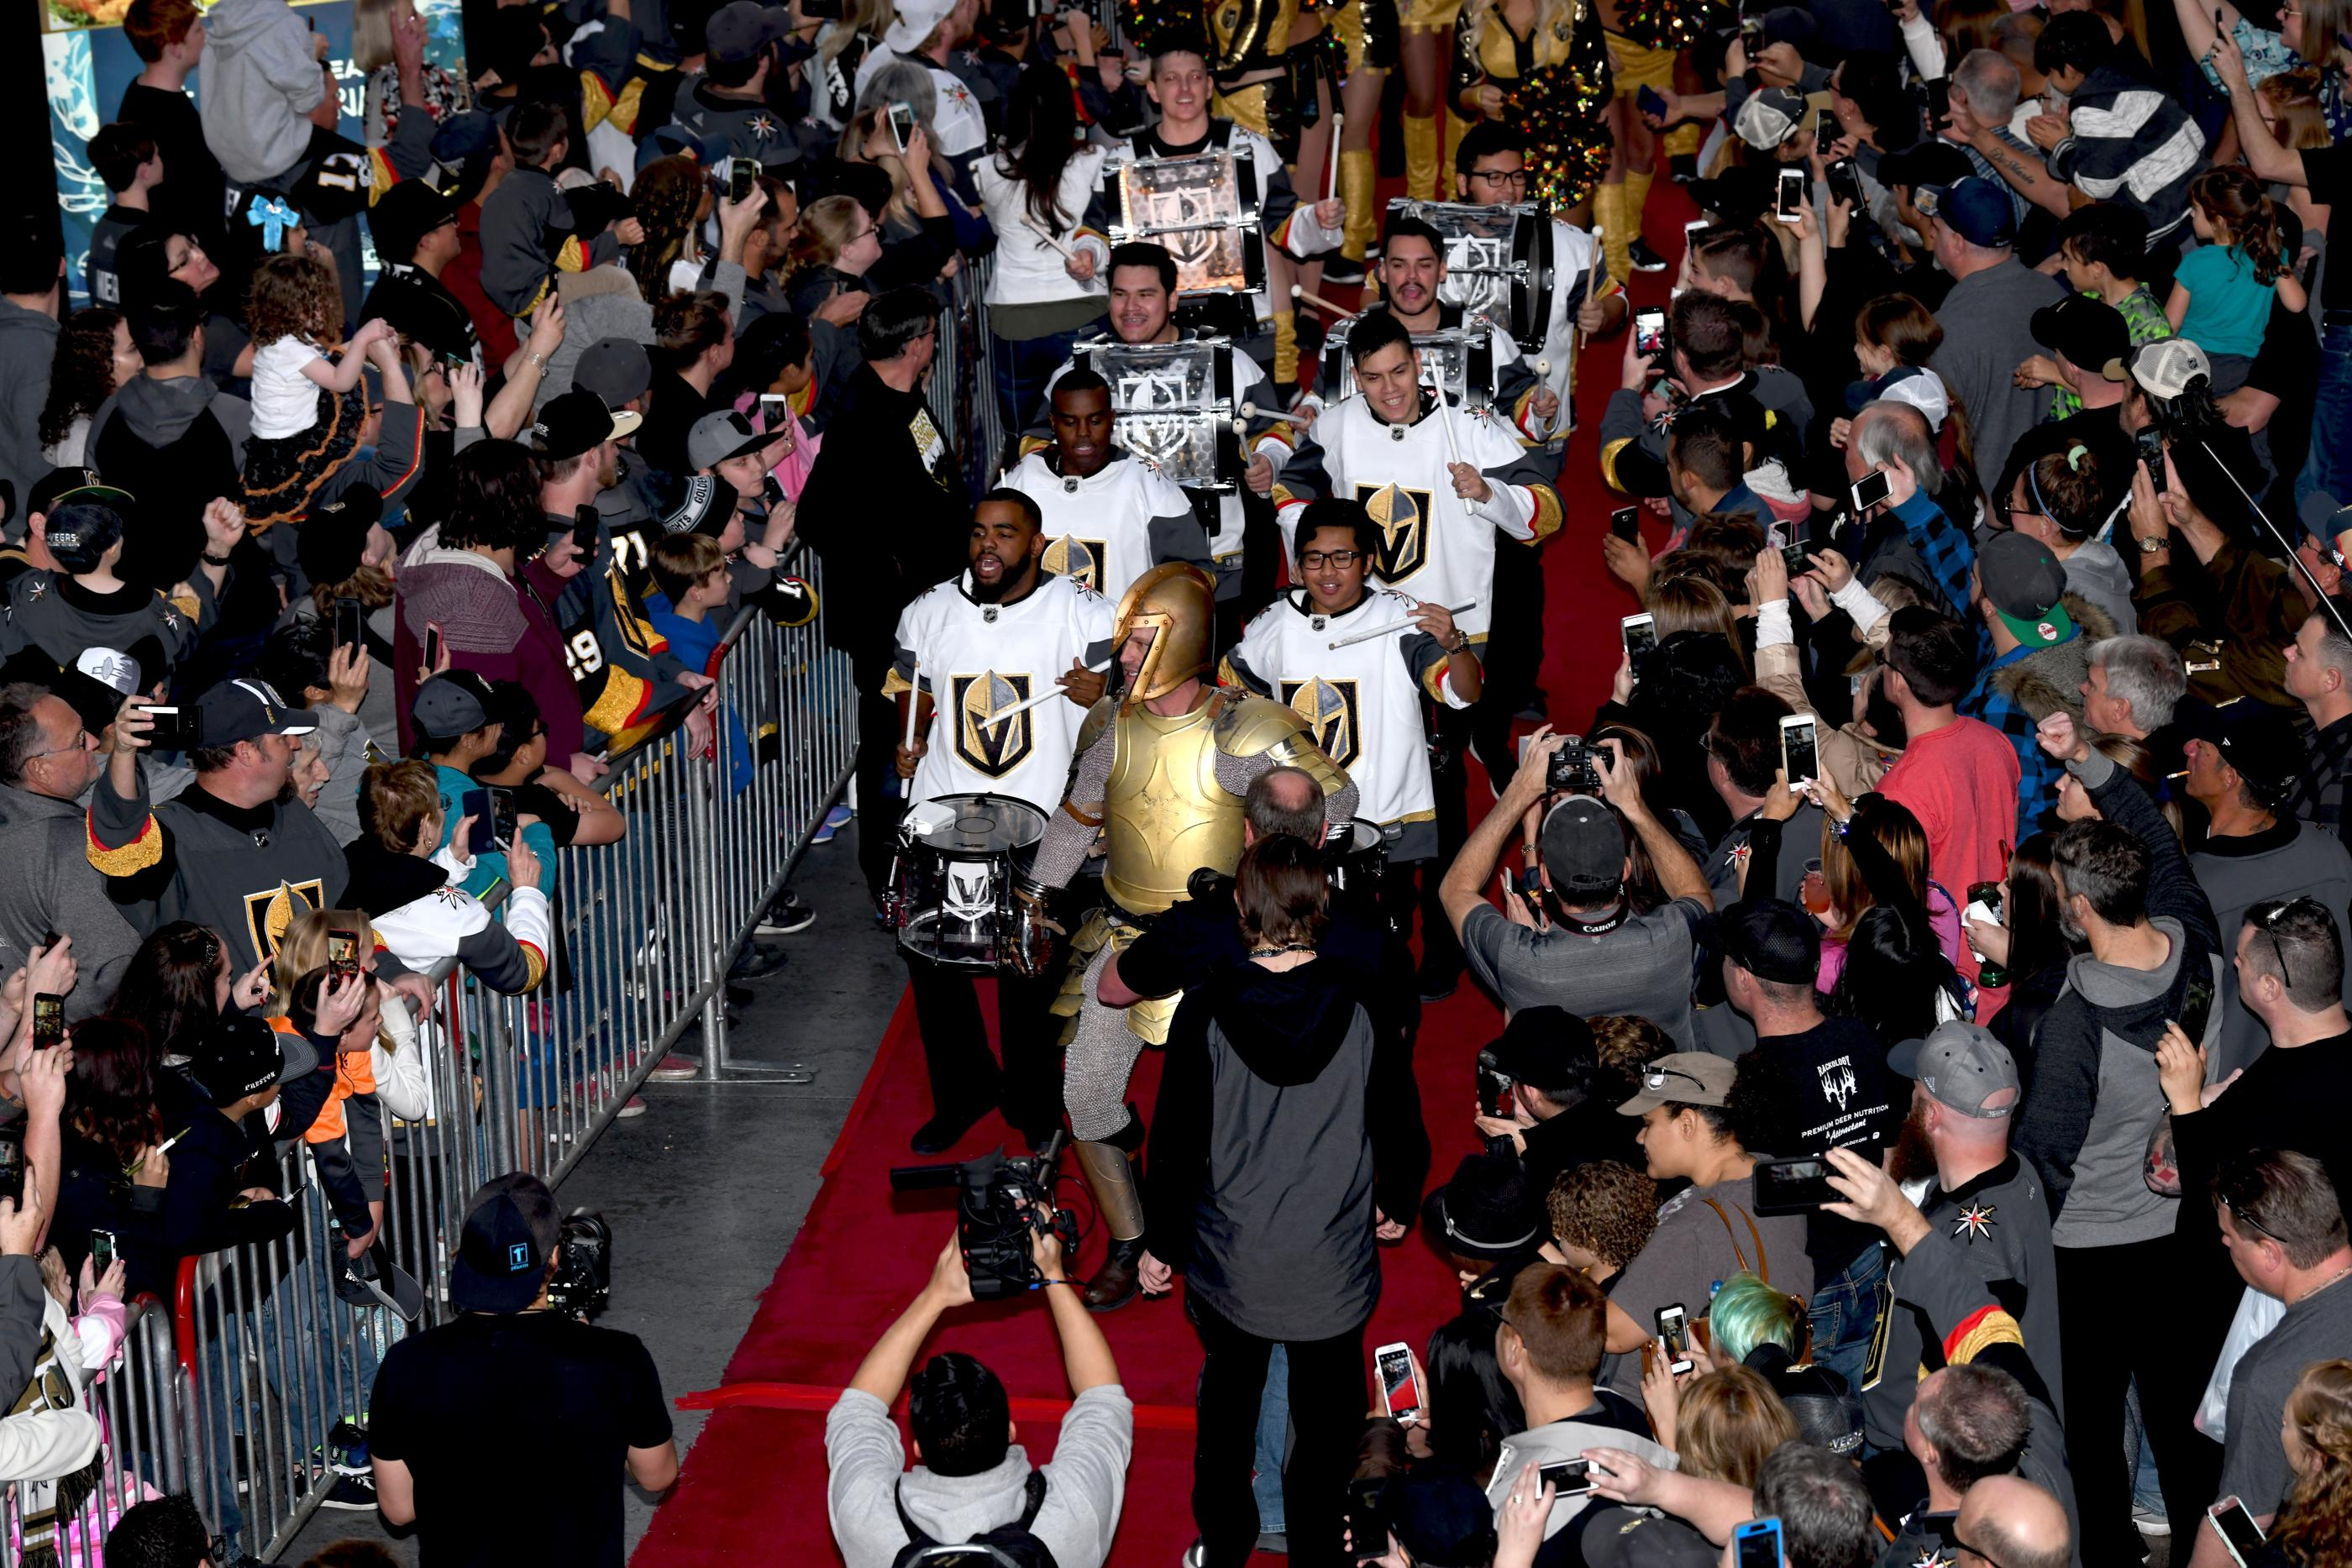 The Golden Knights host a Fan Fest with the D Las Vegas and Fremont Street Experience. Sunday, January 14, 2017. A Golden Knight leads the way for drummers, cheerleaders and the Las Vegas Golden Knights professional hockey team. CREDIT: Glenn Pinkerton/Las Vegas News Bureau